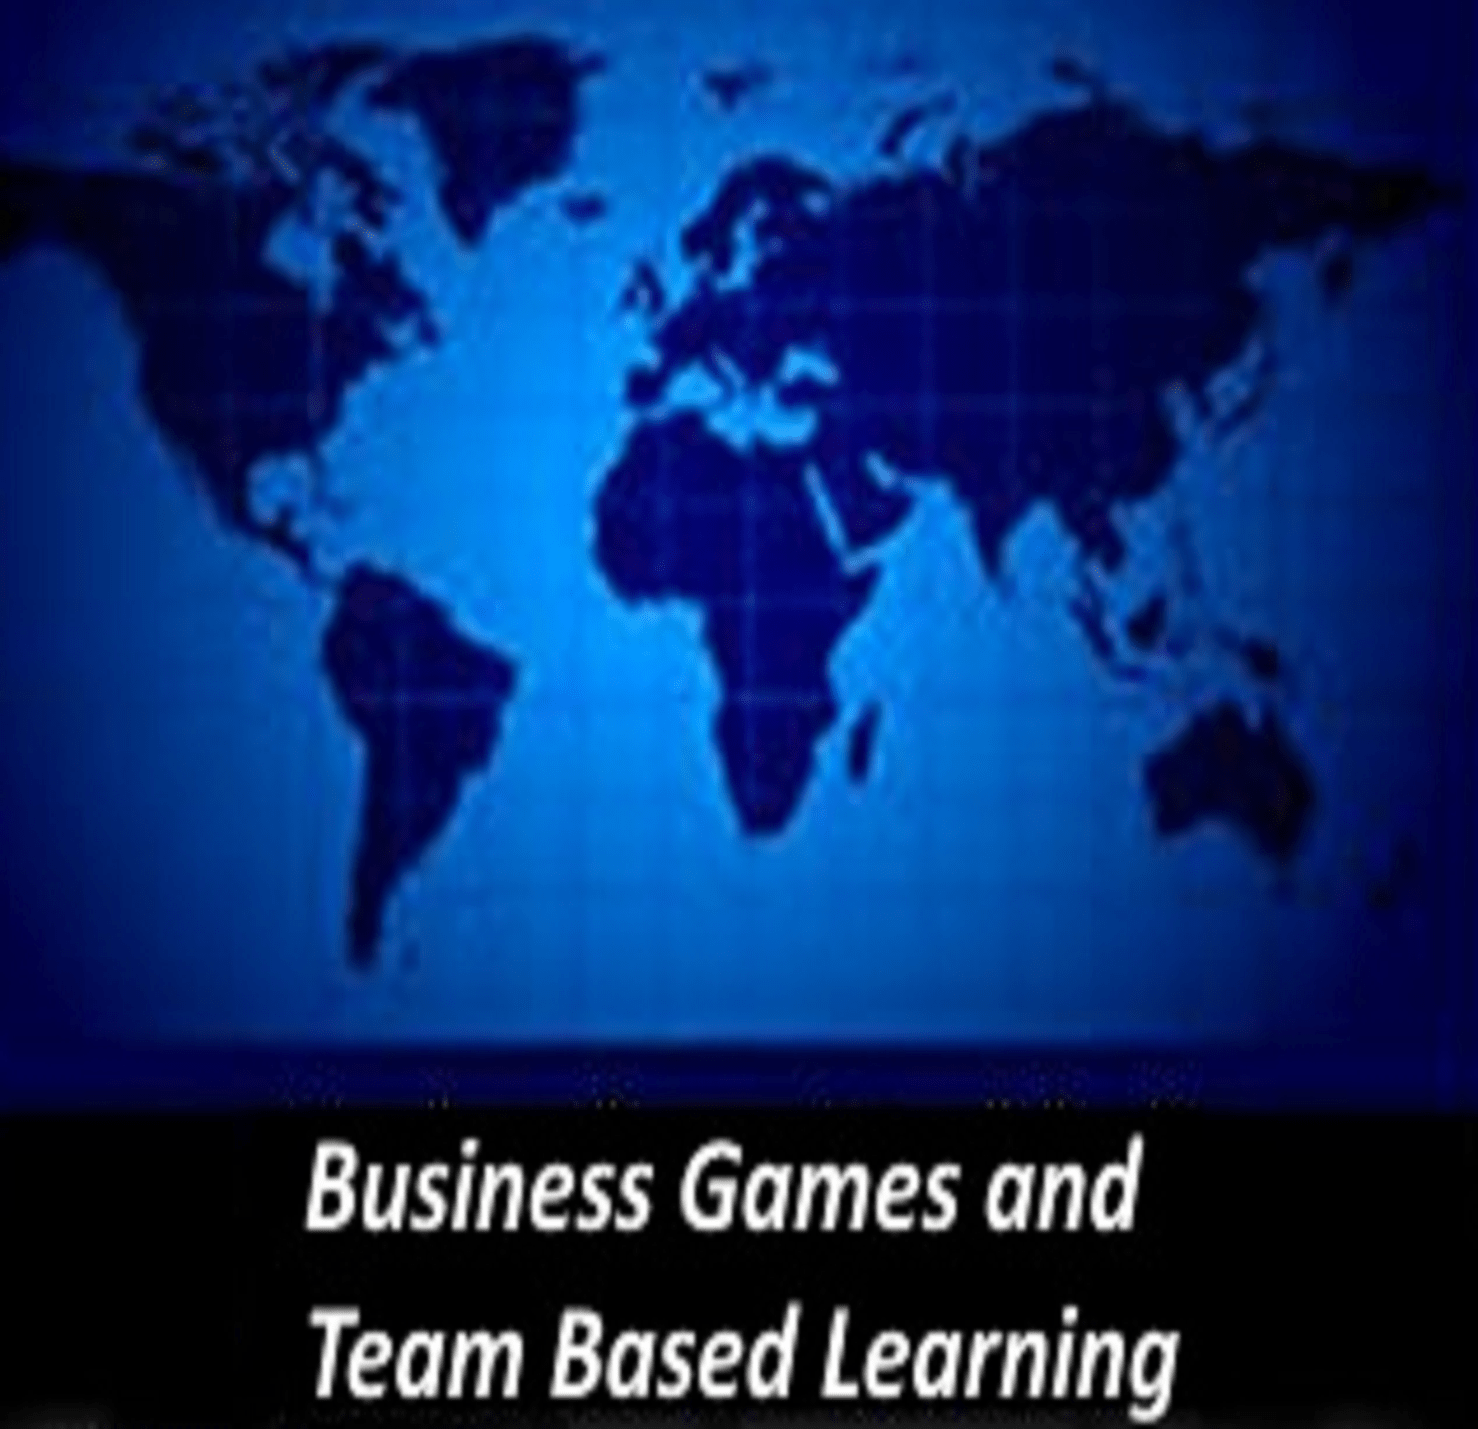 Pci global inc project management training bottom line leadership 1betcityfo Image collections